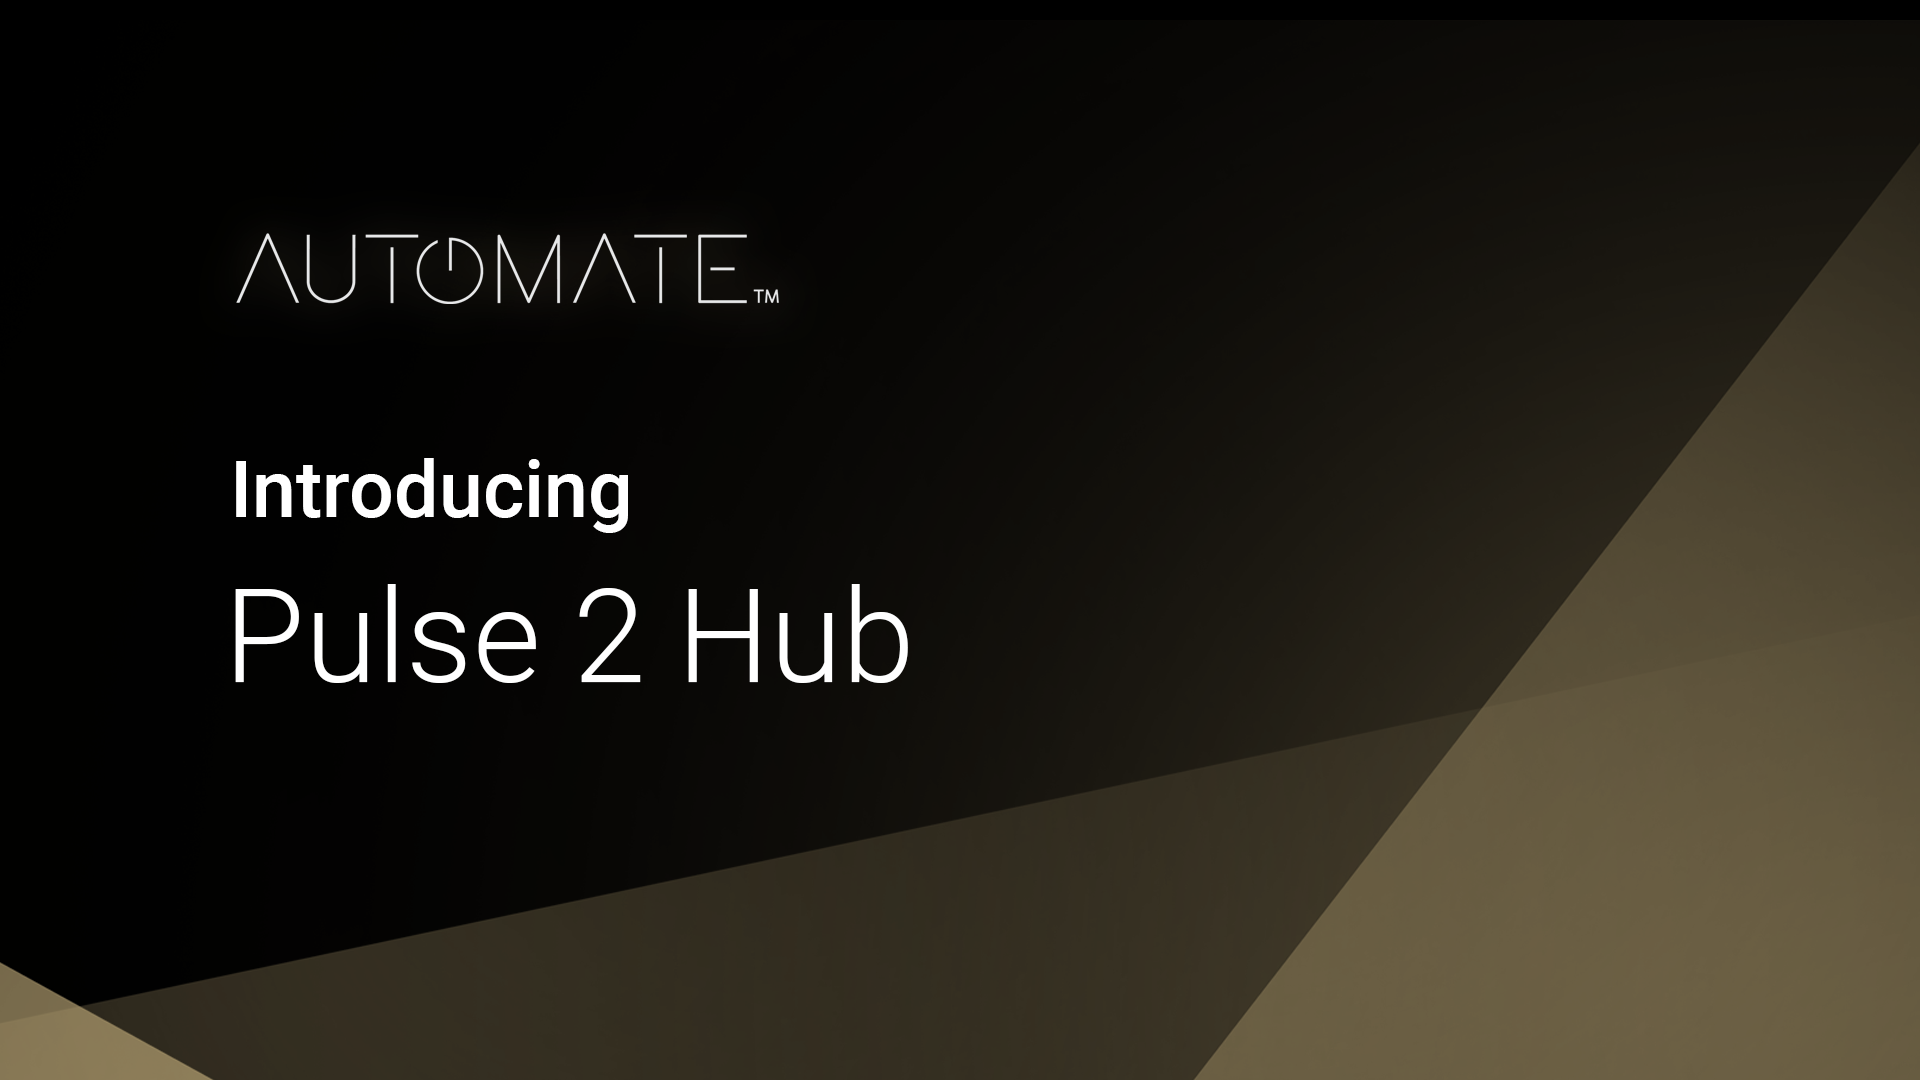 Pulse 2 Hub Introduction Overview